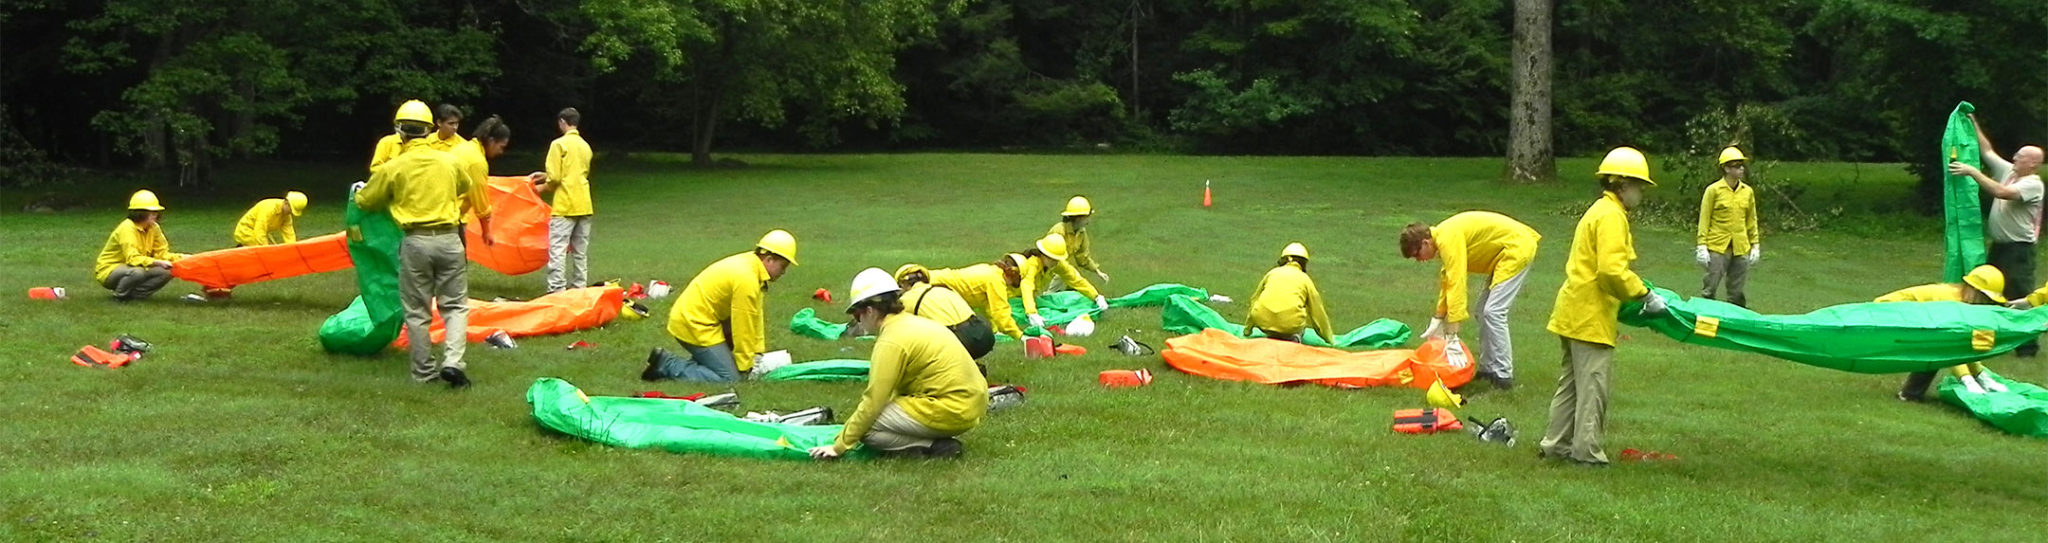 Interns rolling fire shelters